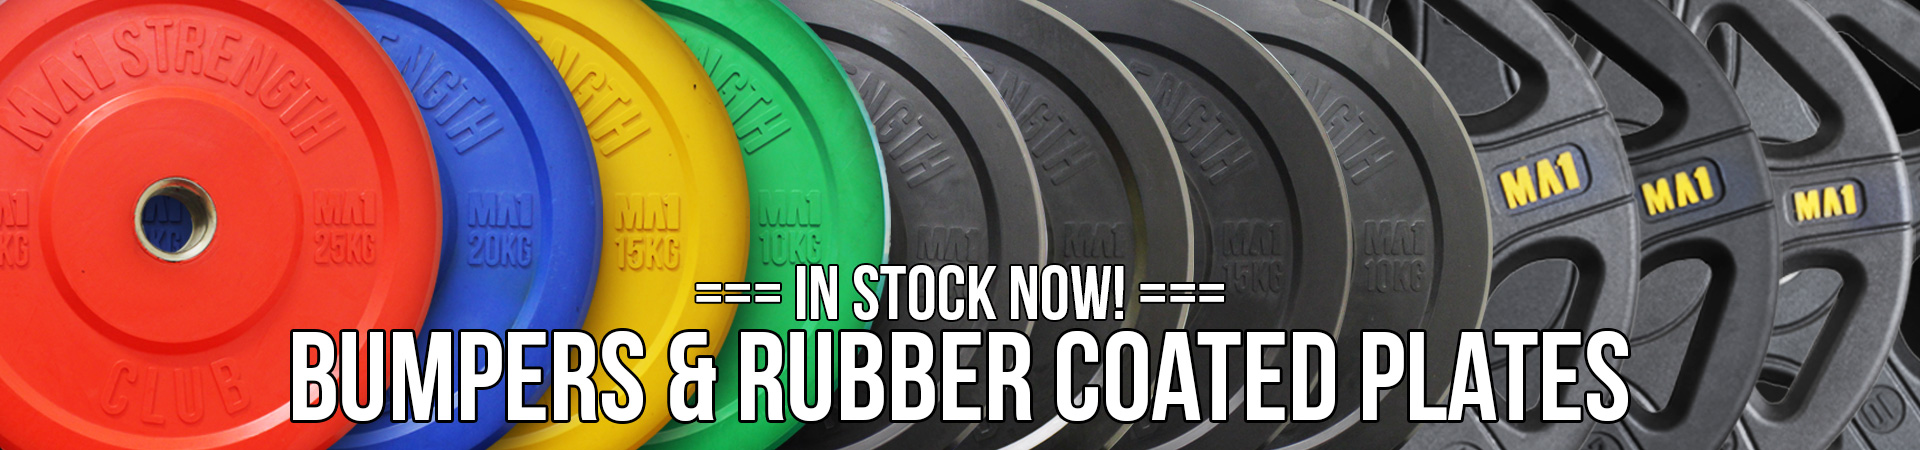 Bumpers and Rubber Coated Plates In Stock Now!